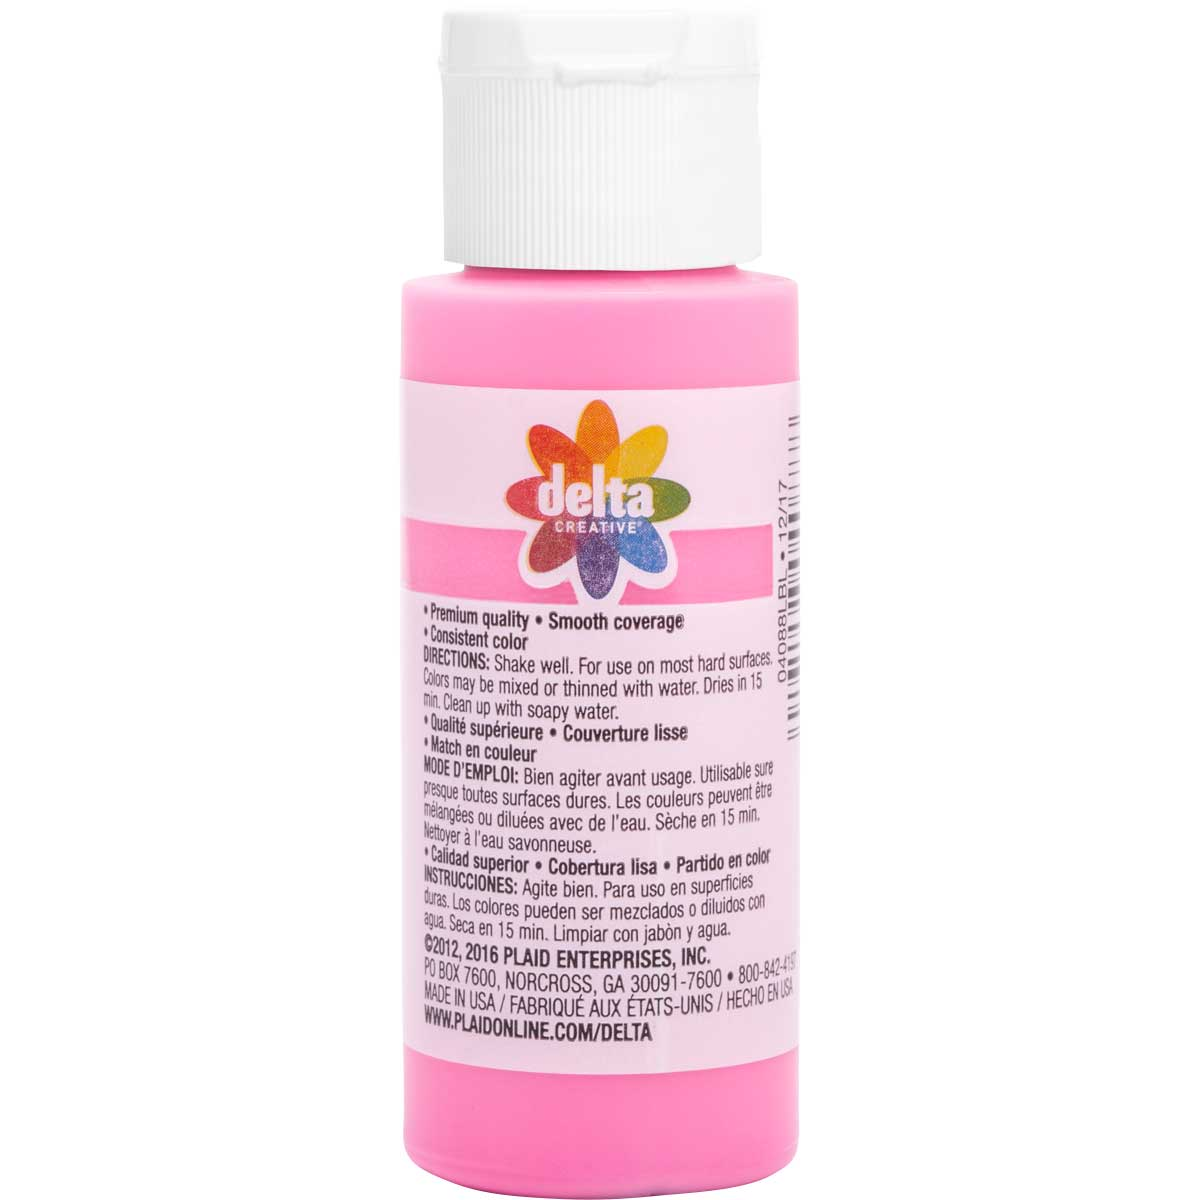 Delta Ceramcoat ® Acrylic Paint - Chic Pink, 2 oz.